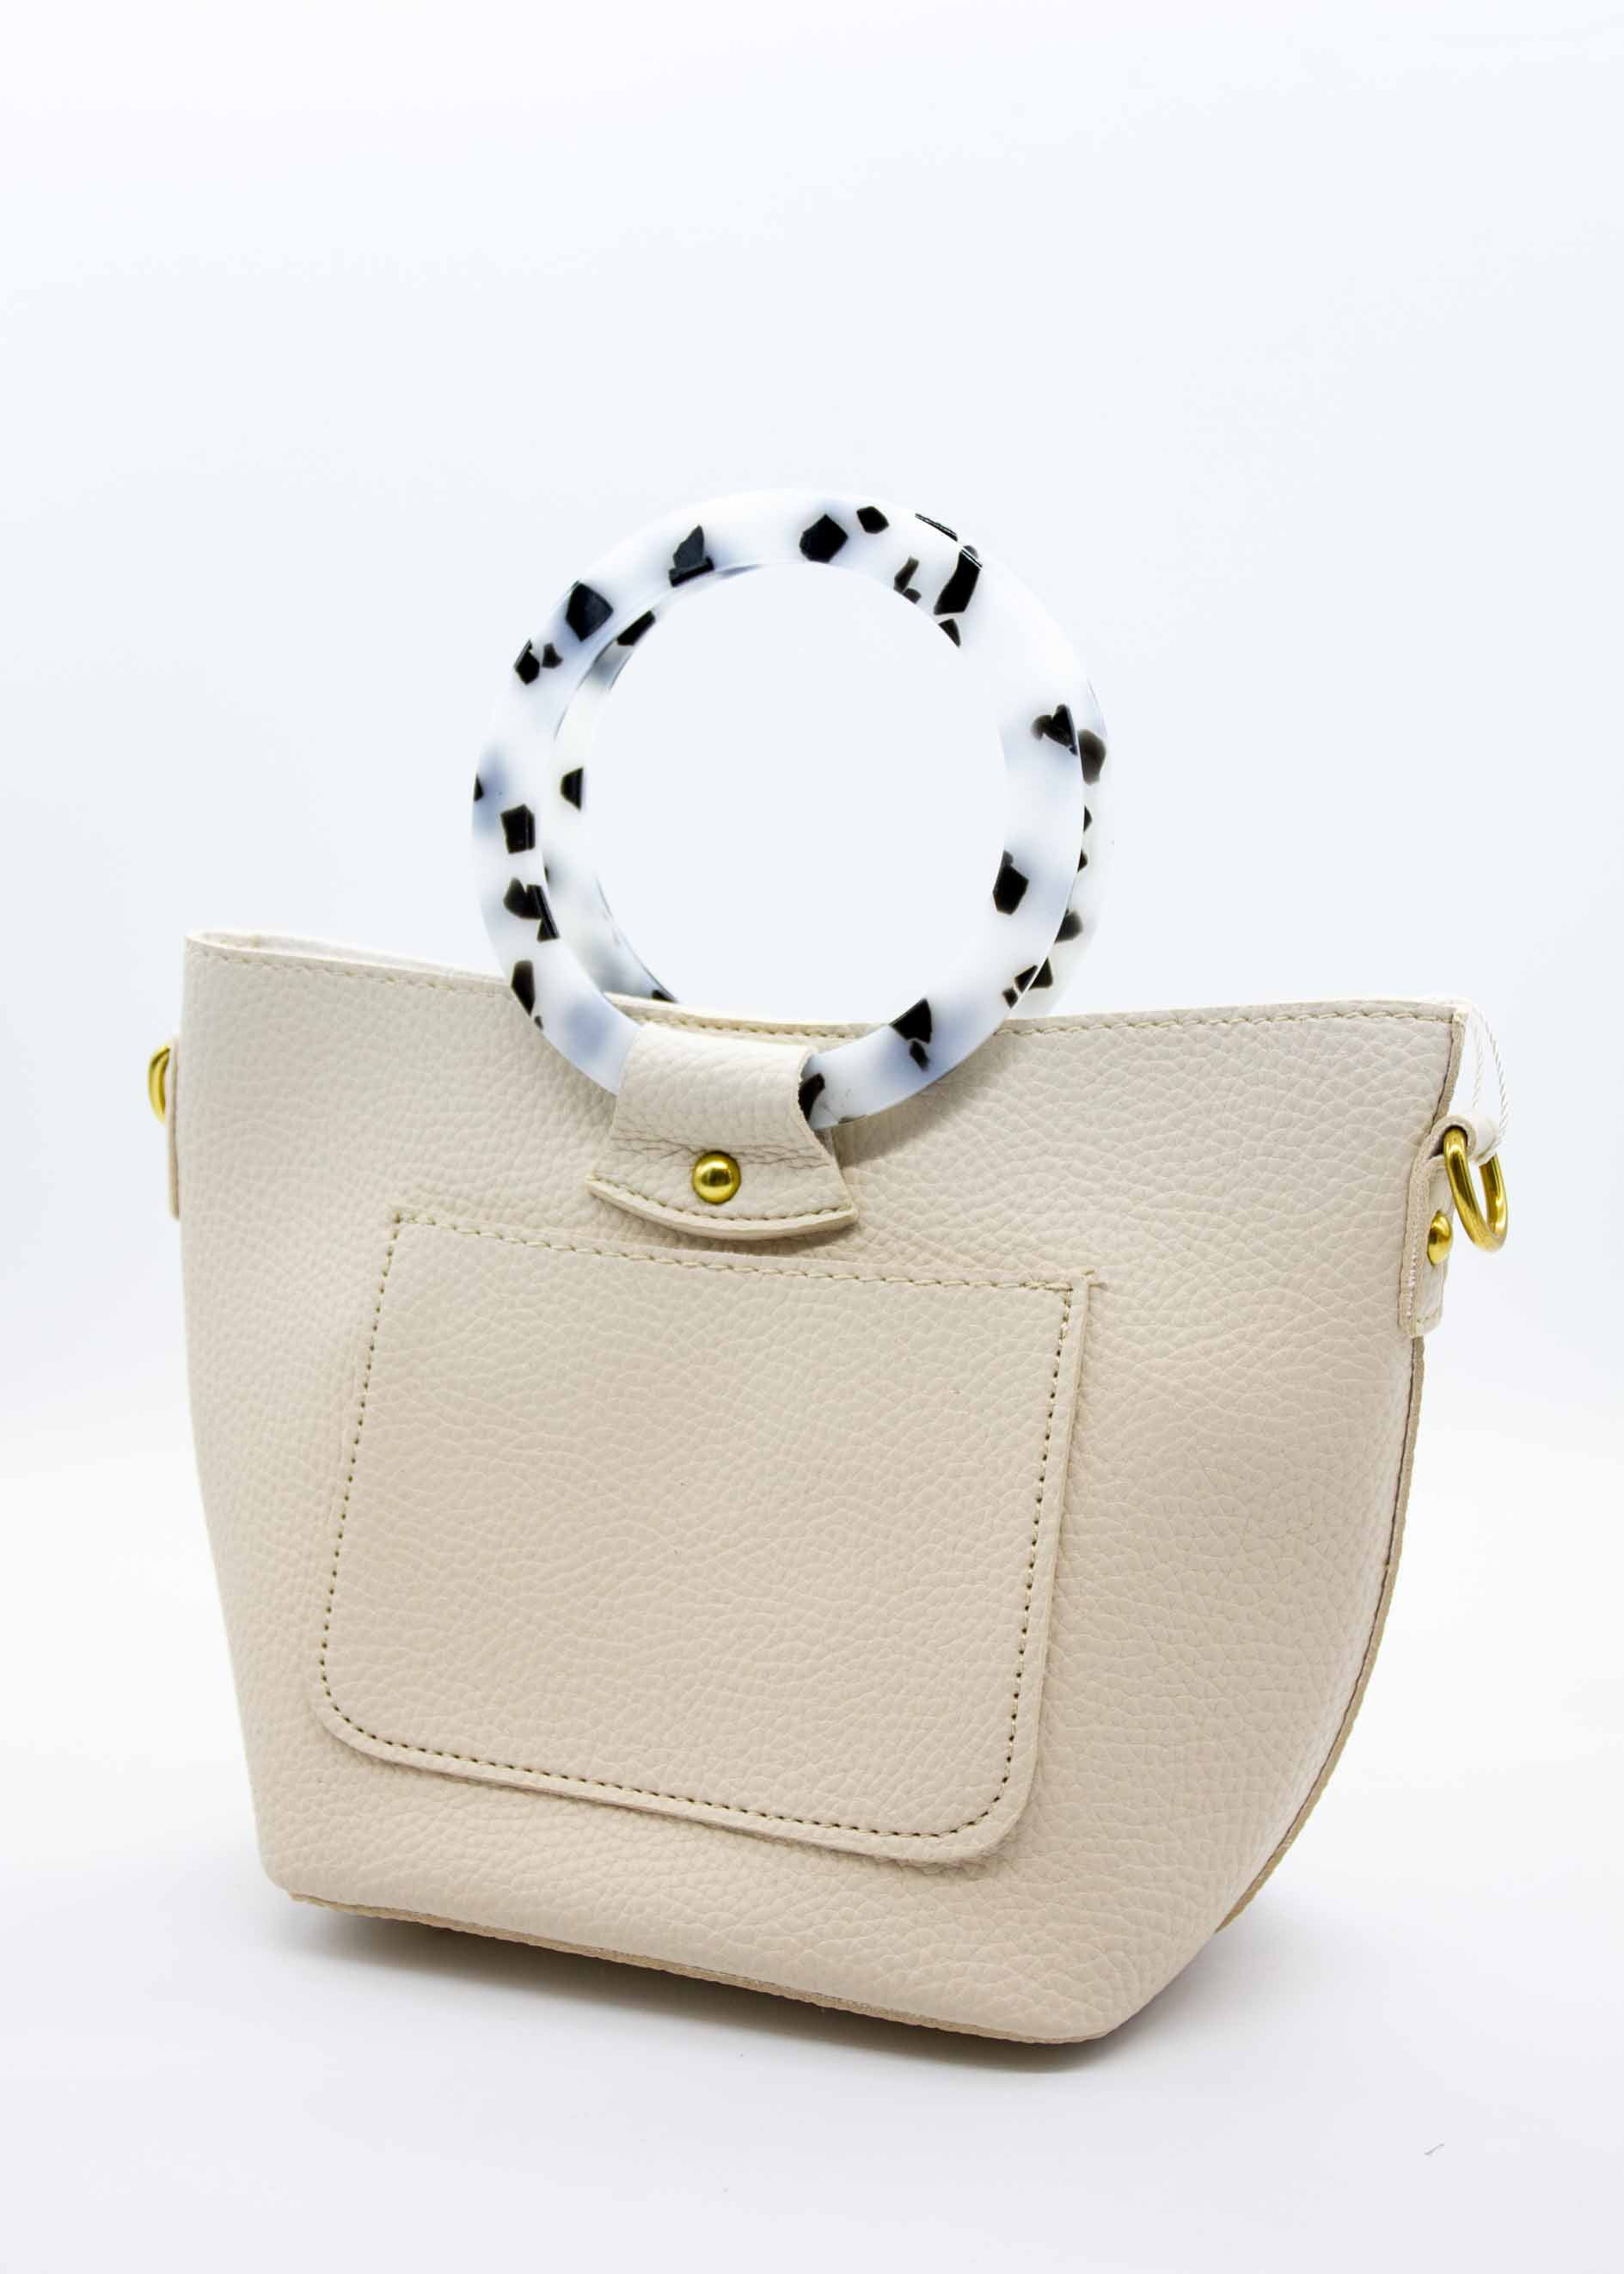 Aurelian Bag - Cream